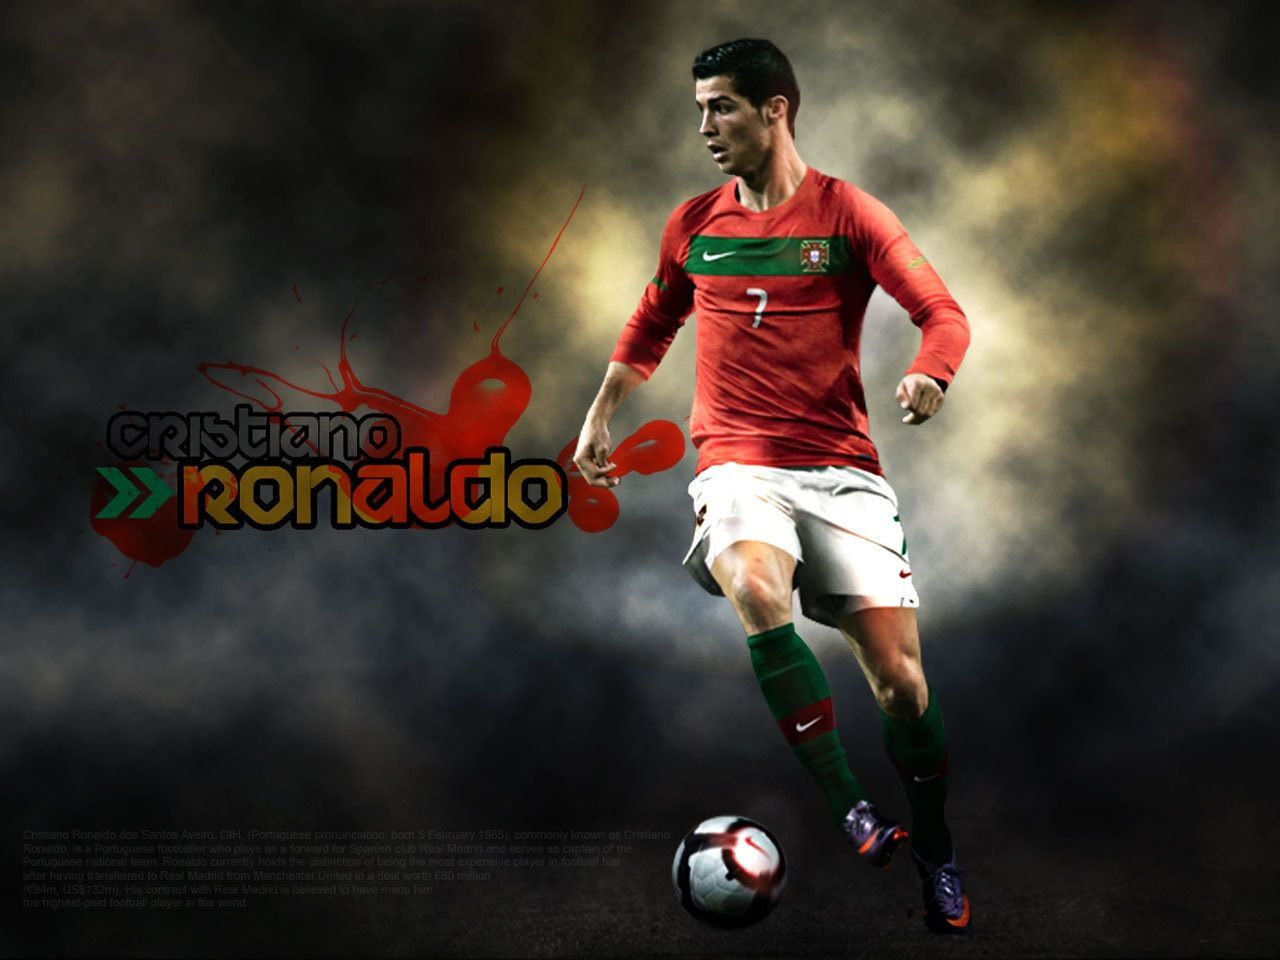 gold painting of cristiano ronaldo hd desktop wallpaper 1918×1078